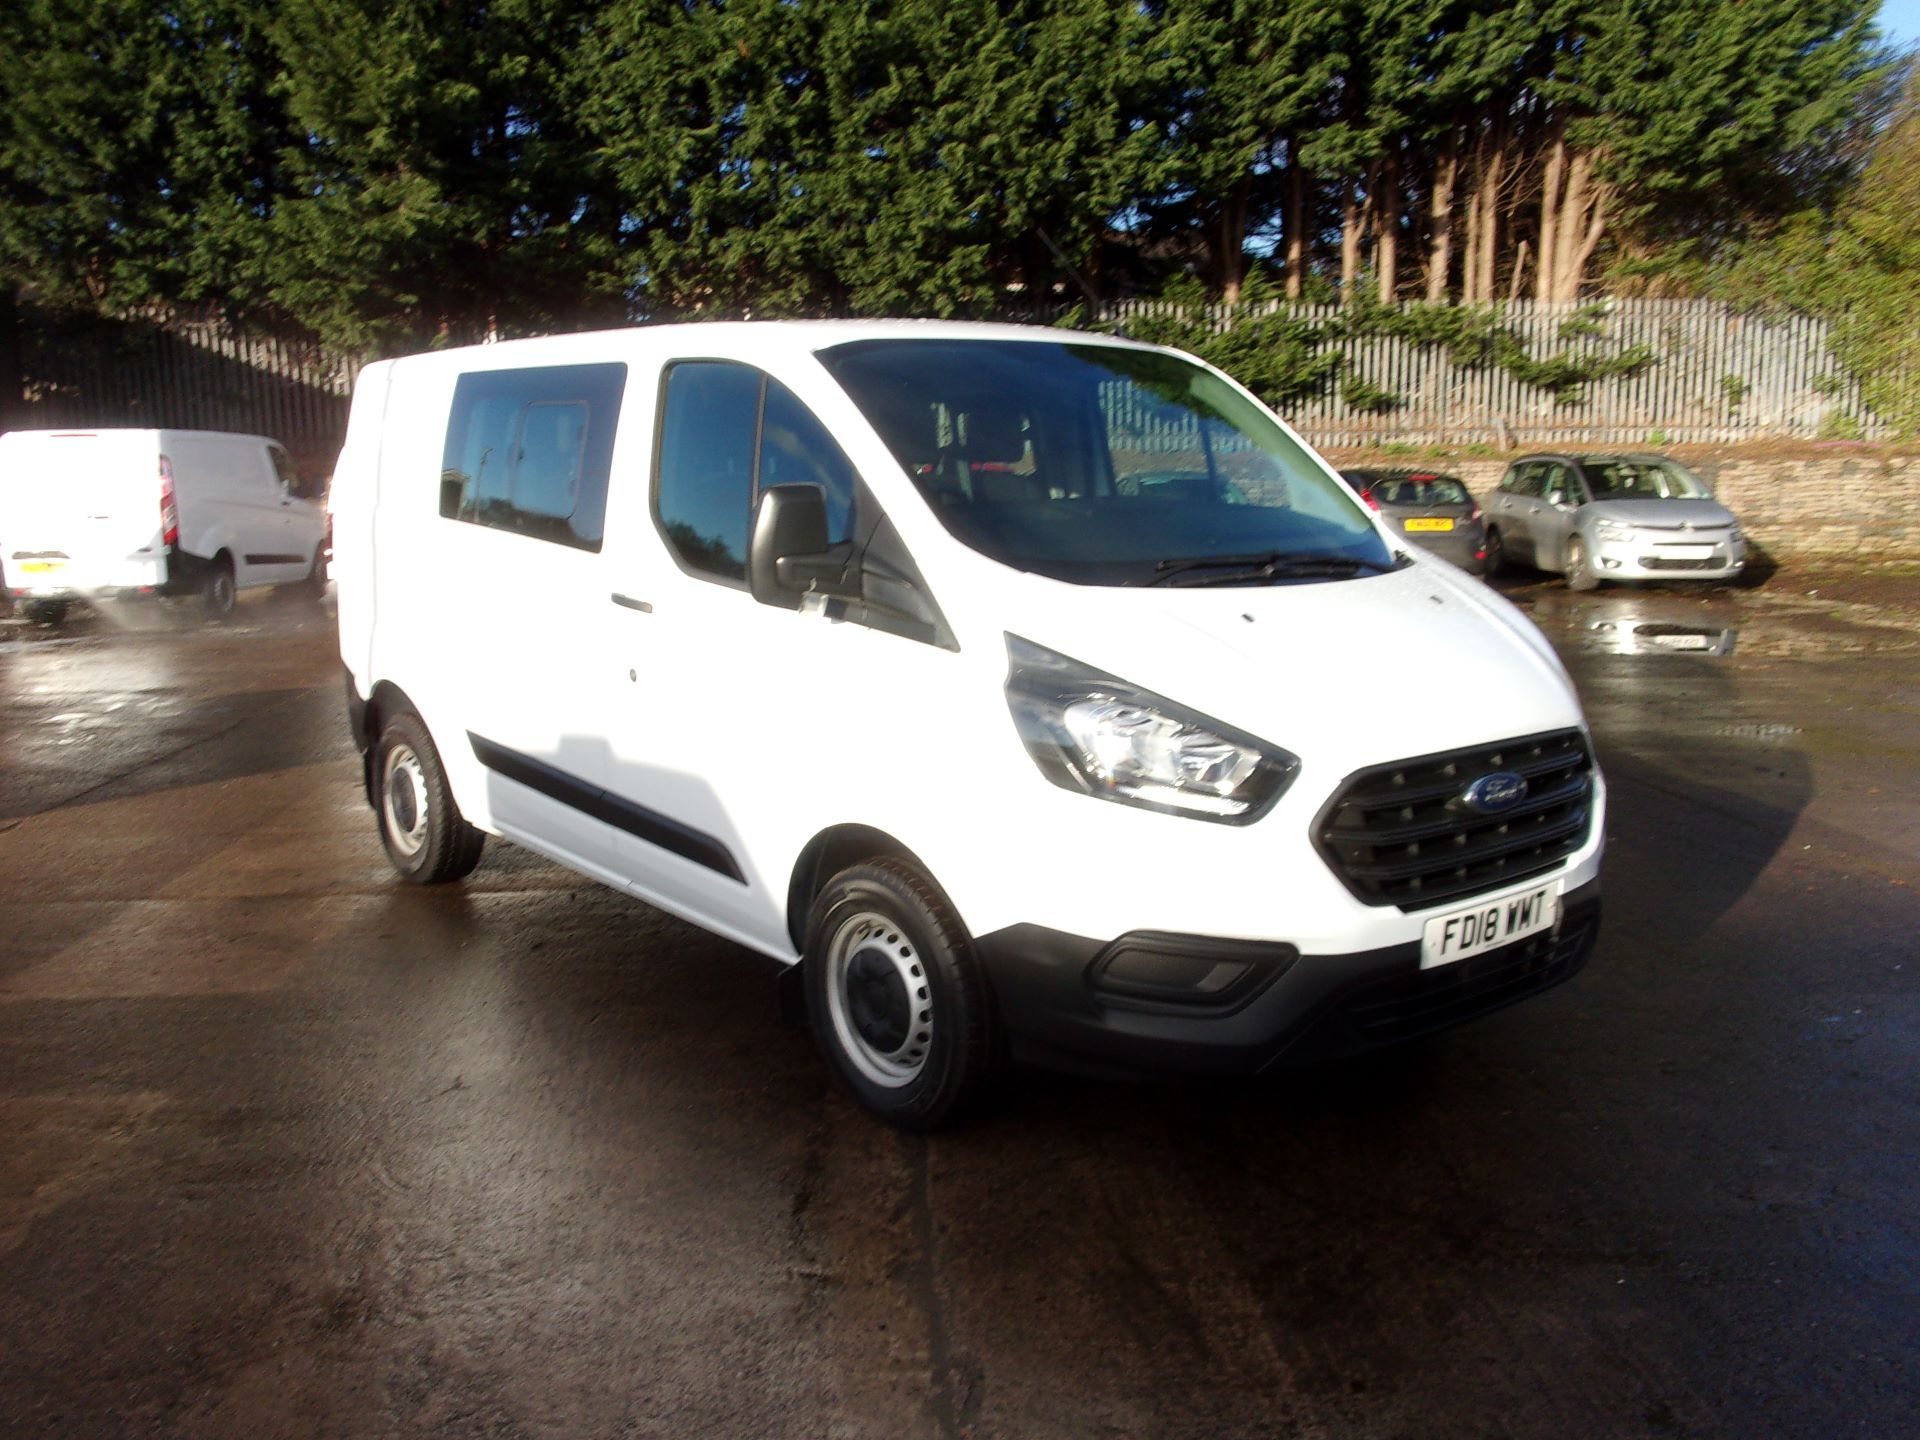 2018 Ford Transit Custom 300 L1 DIESEL FWD 2.0 TDCI 105PS LOW ROOF DOUBLE CAB VAN EURO 6 (FD18WMT)